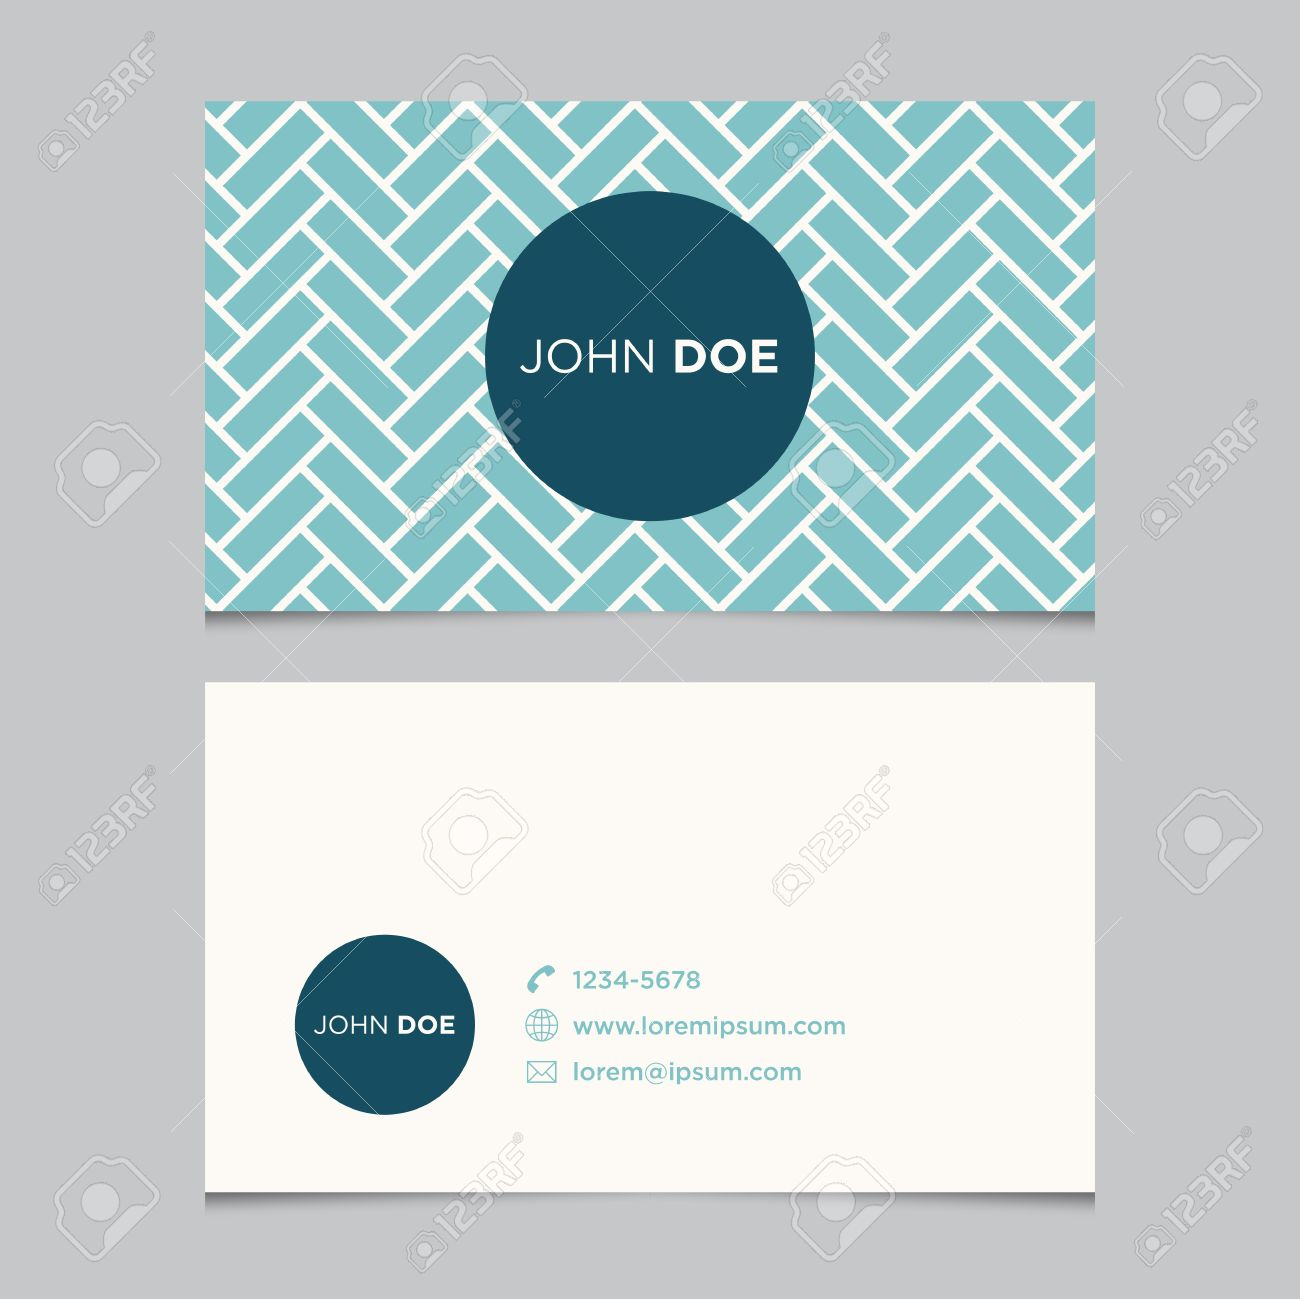 Business Card Template With Background Pattern Royalty Free ...